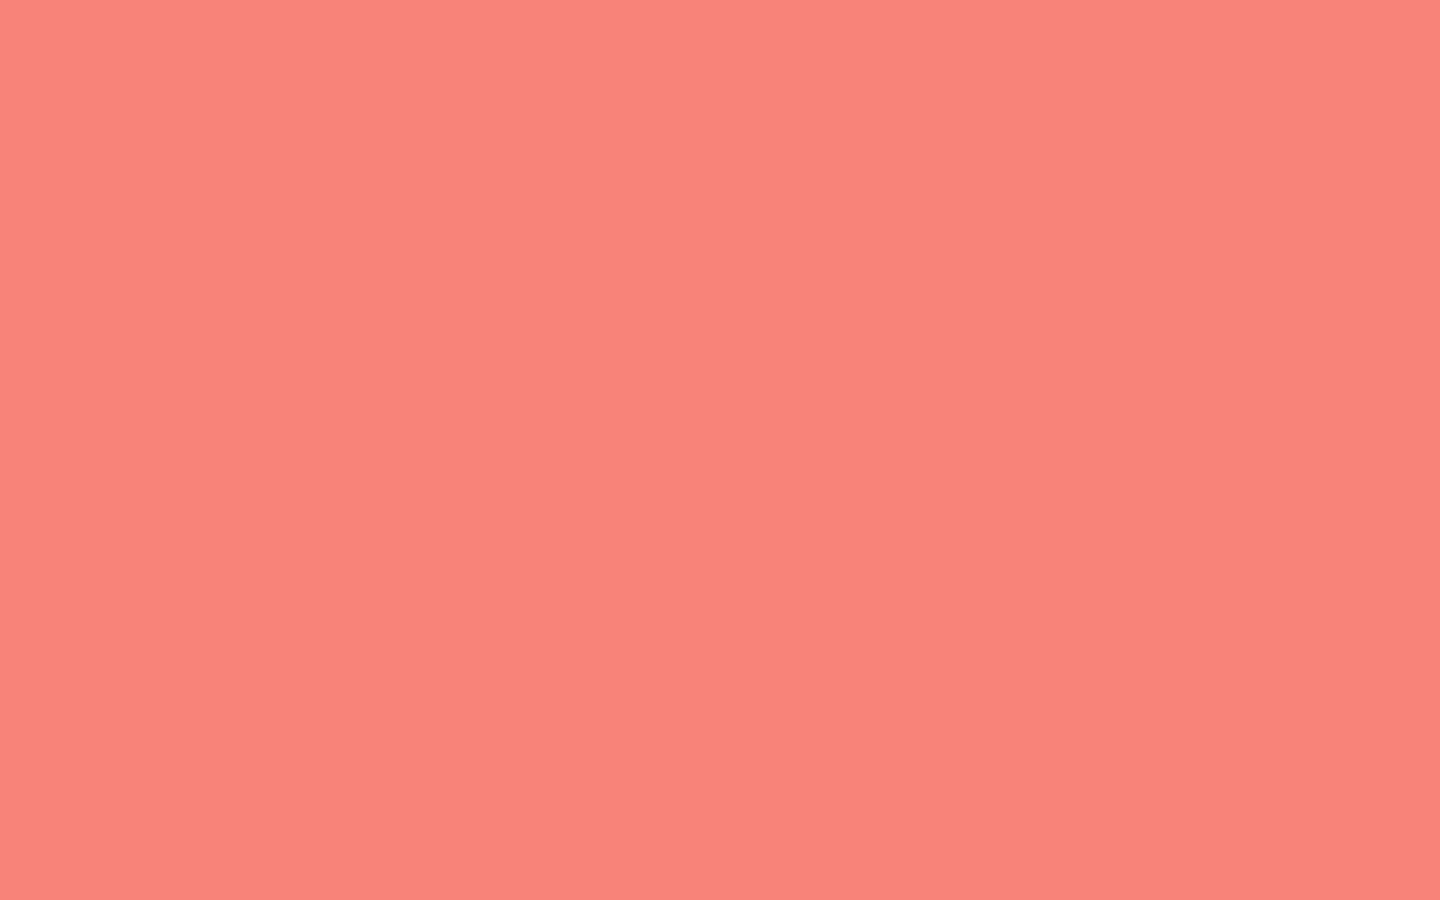 1440x900 Congo Pink Solid Color Background